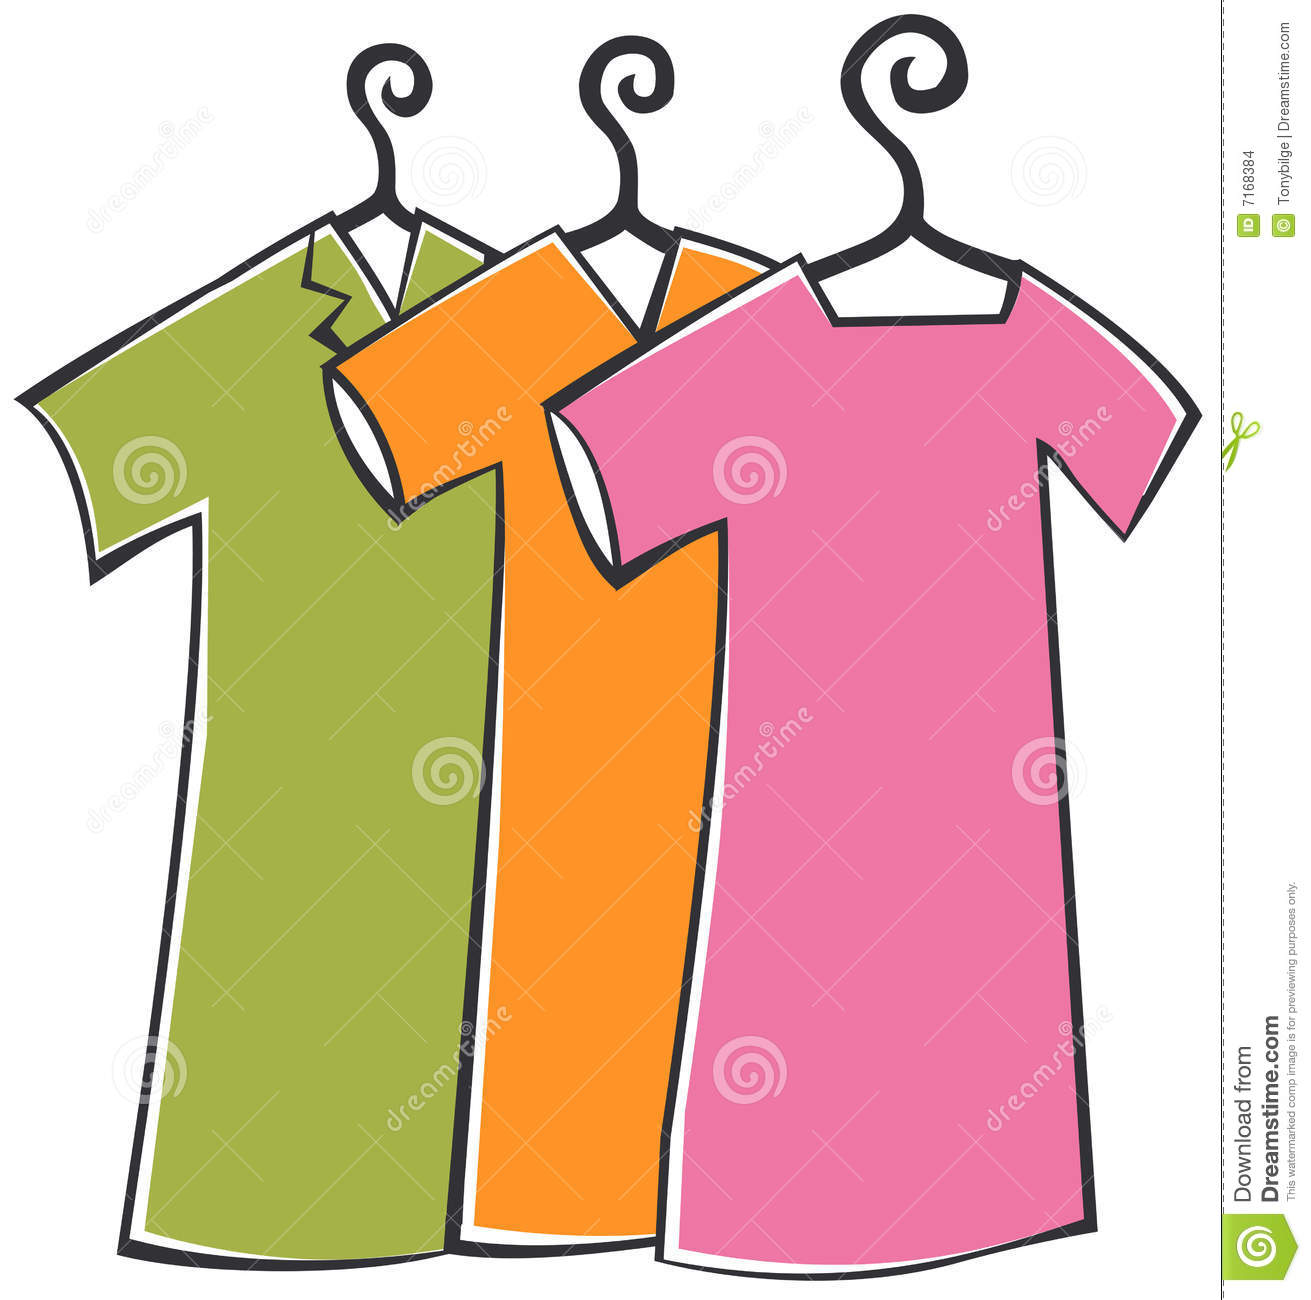 clipart hanging clothes - photo #18